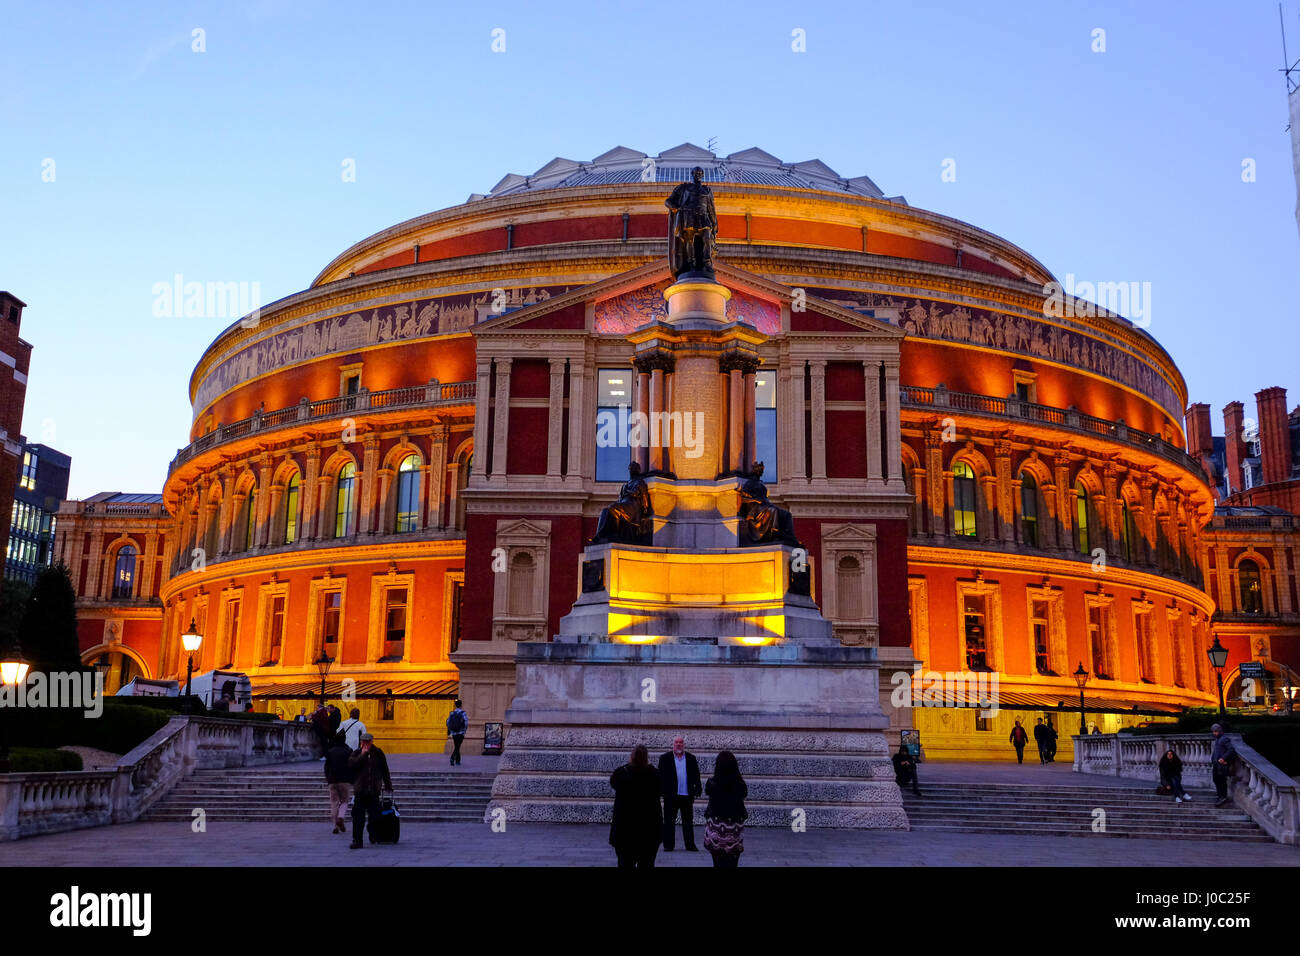 Royal Albert Hall, Kensington, London, England, Vereinigtes Königreich Stockbild